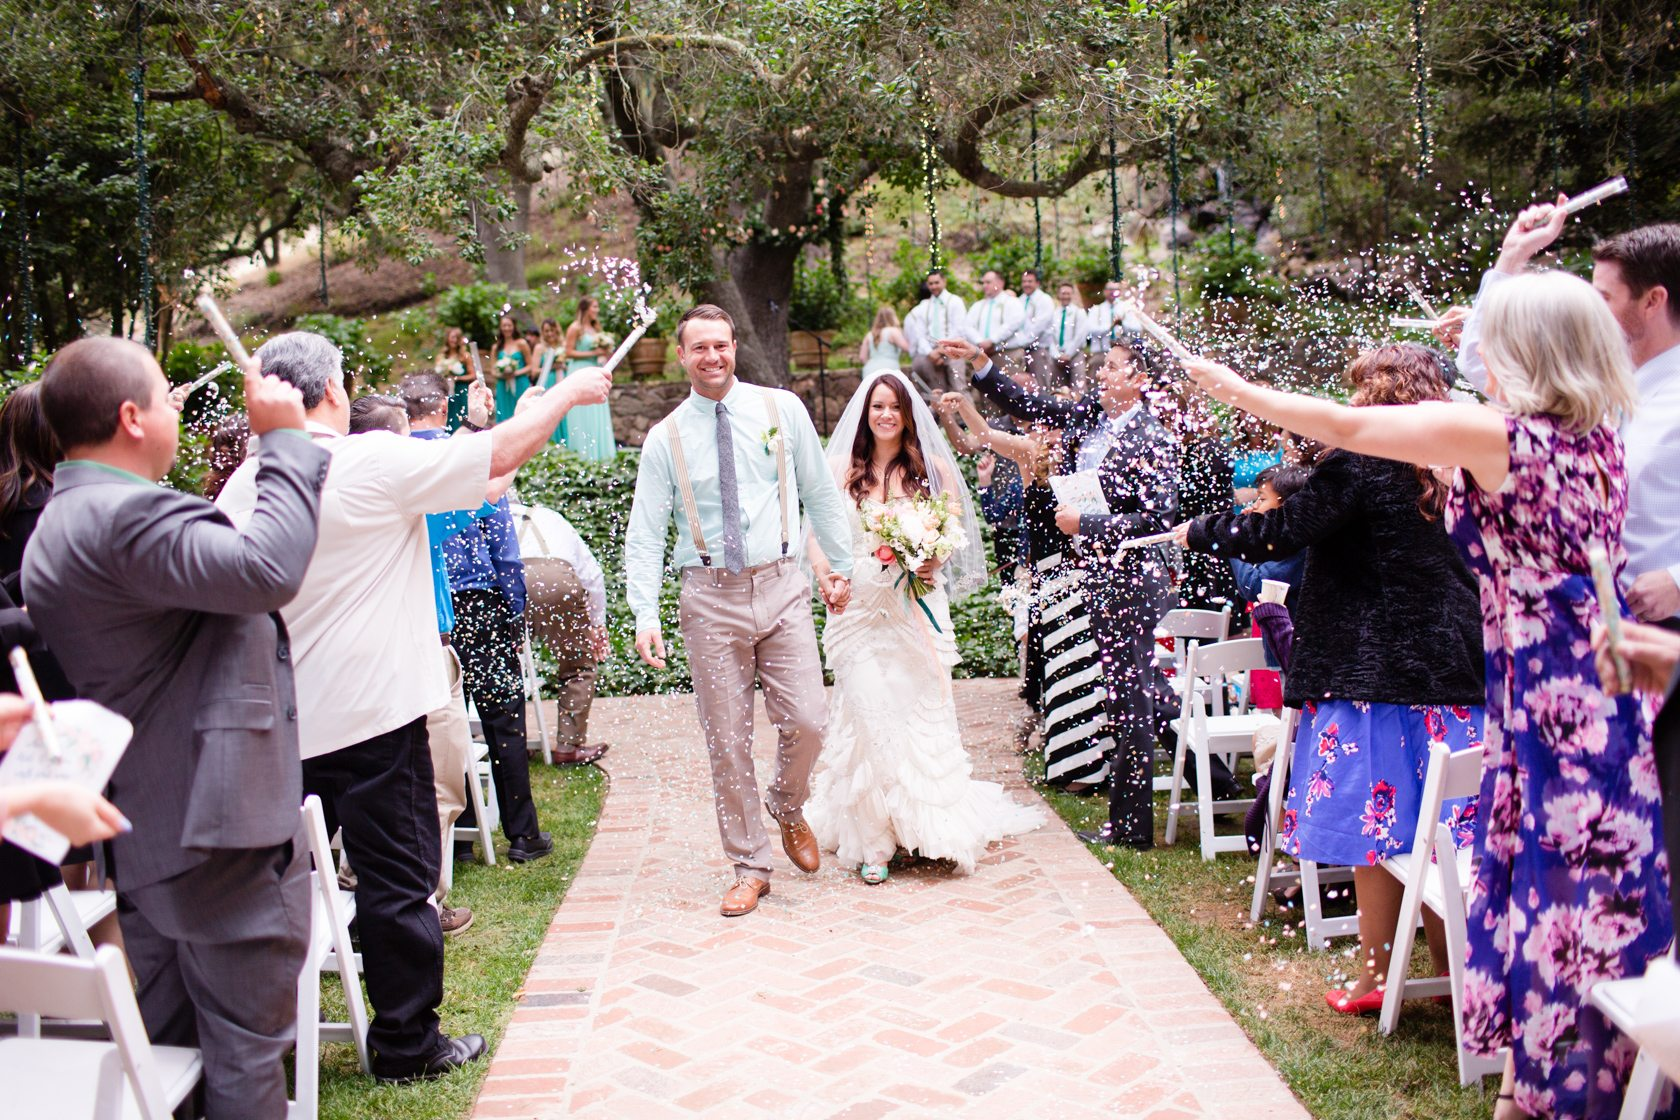 The_Printed_Palette_Wedding_at_Calamigos_Ranch_079.jpg